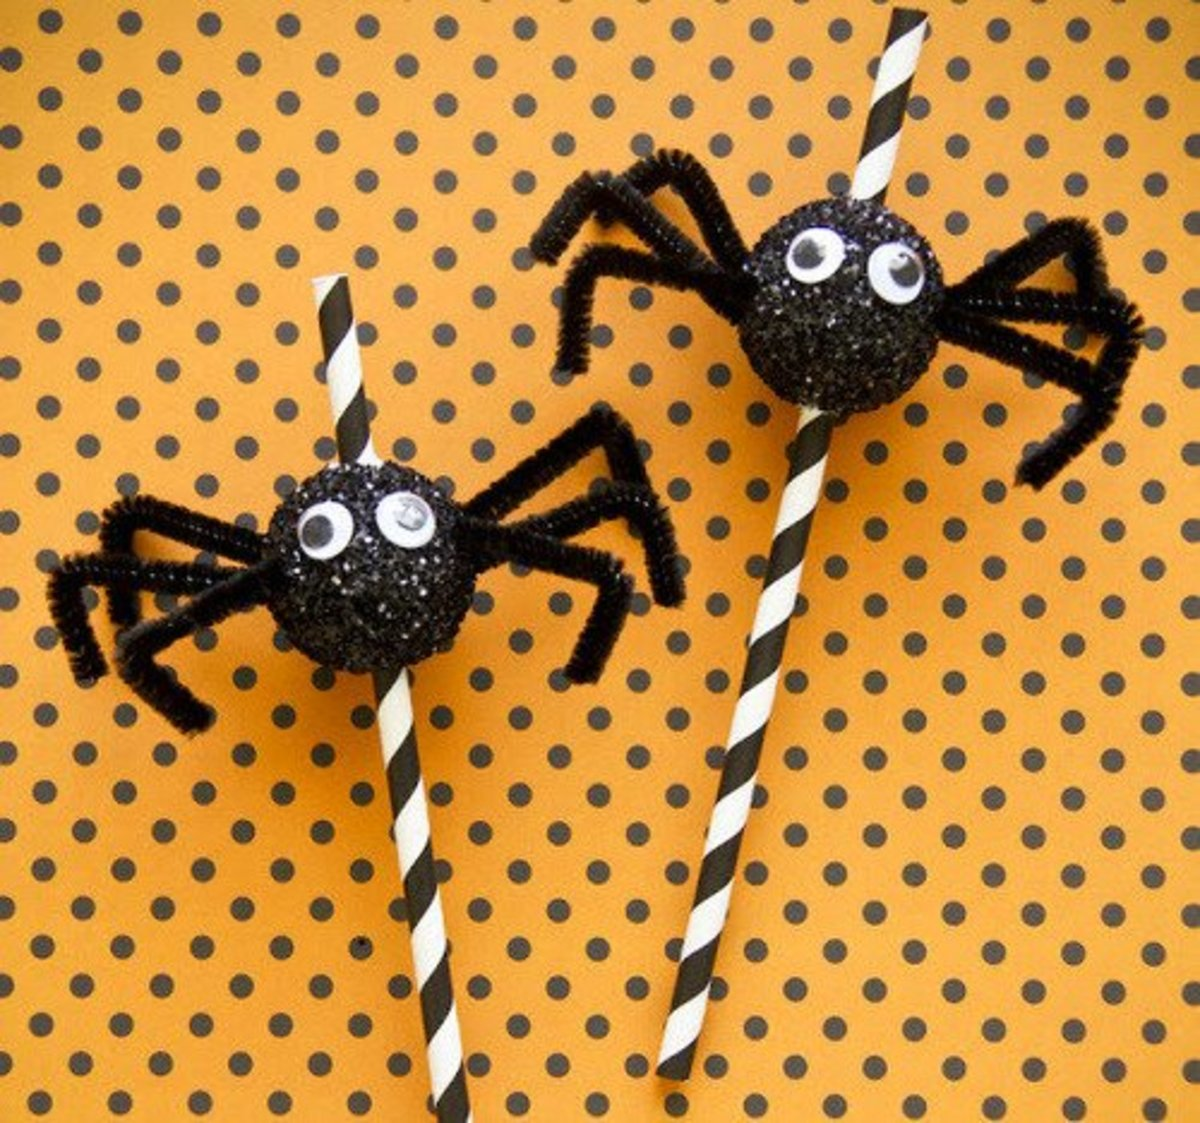 spider craft ideas 39 creepy spider craft ideas feltmagnet 2982